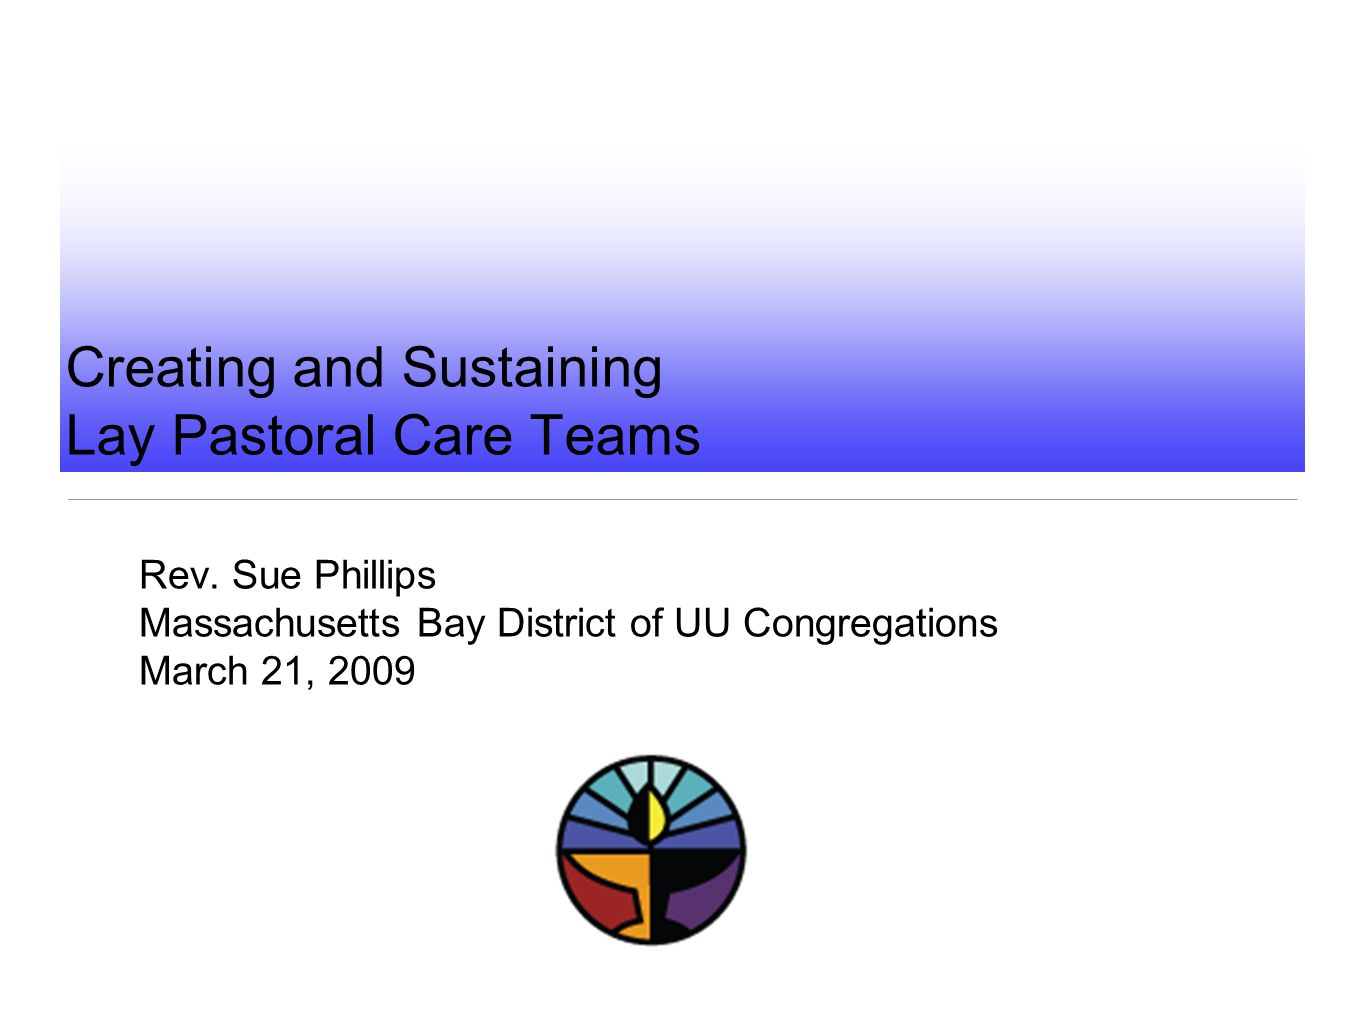 Creating and Sustaining Lay Pastoral Care Teams Rev. Sue Phillips Massachusetts Bay District of UU Congregations March 21, 2009